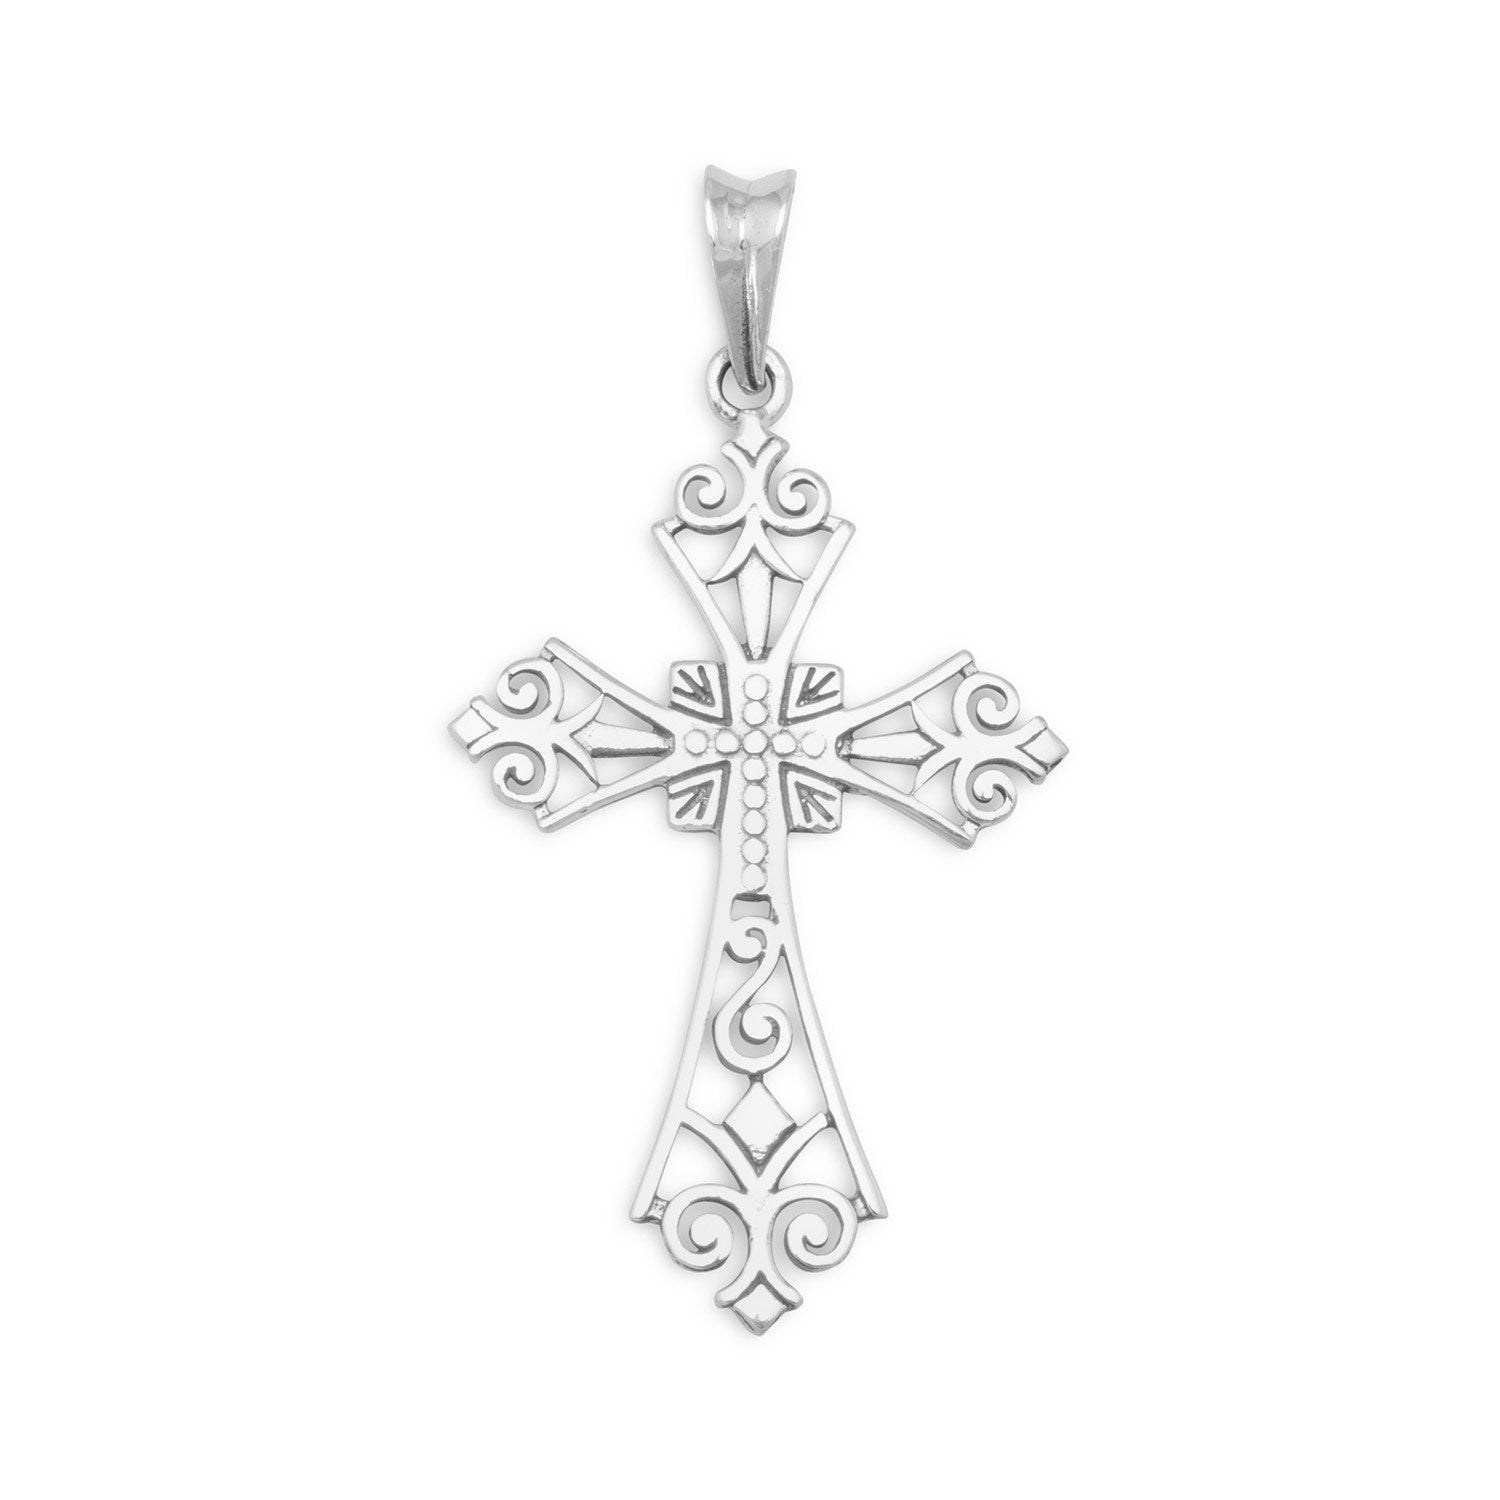 Ornate Oxidized Cross Pendant - the-southern-magnolia-too